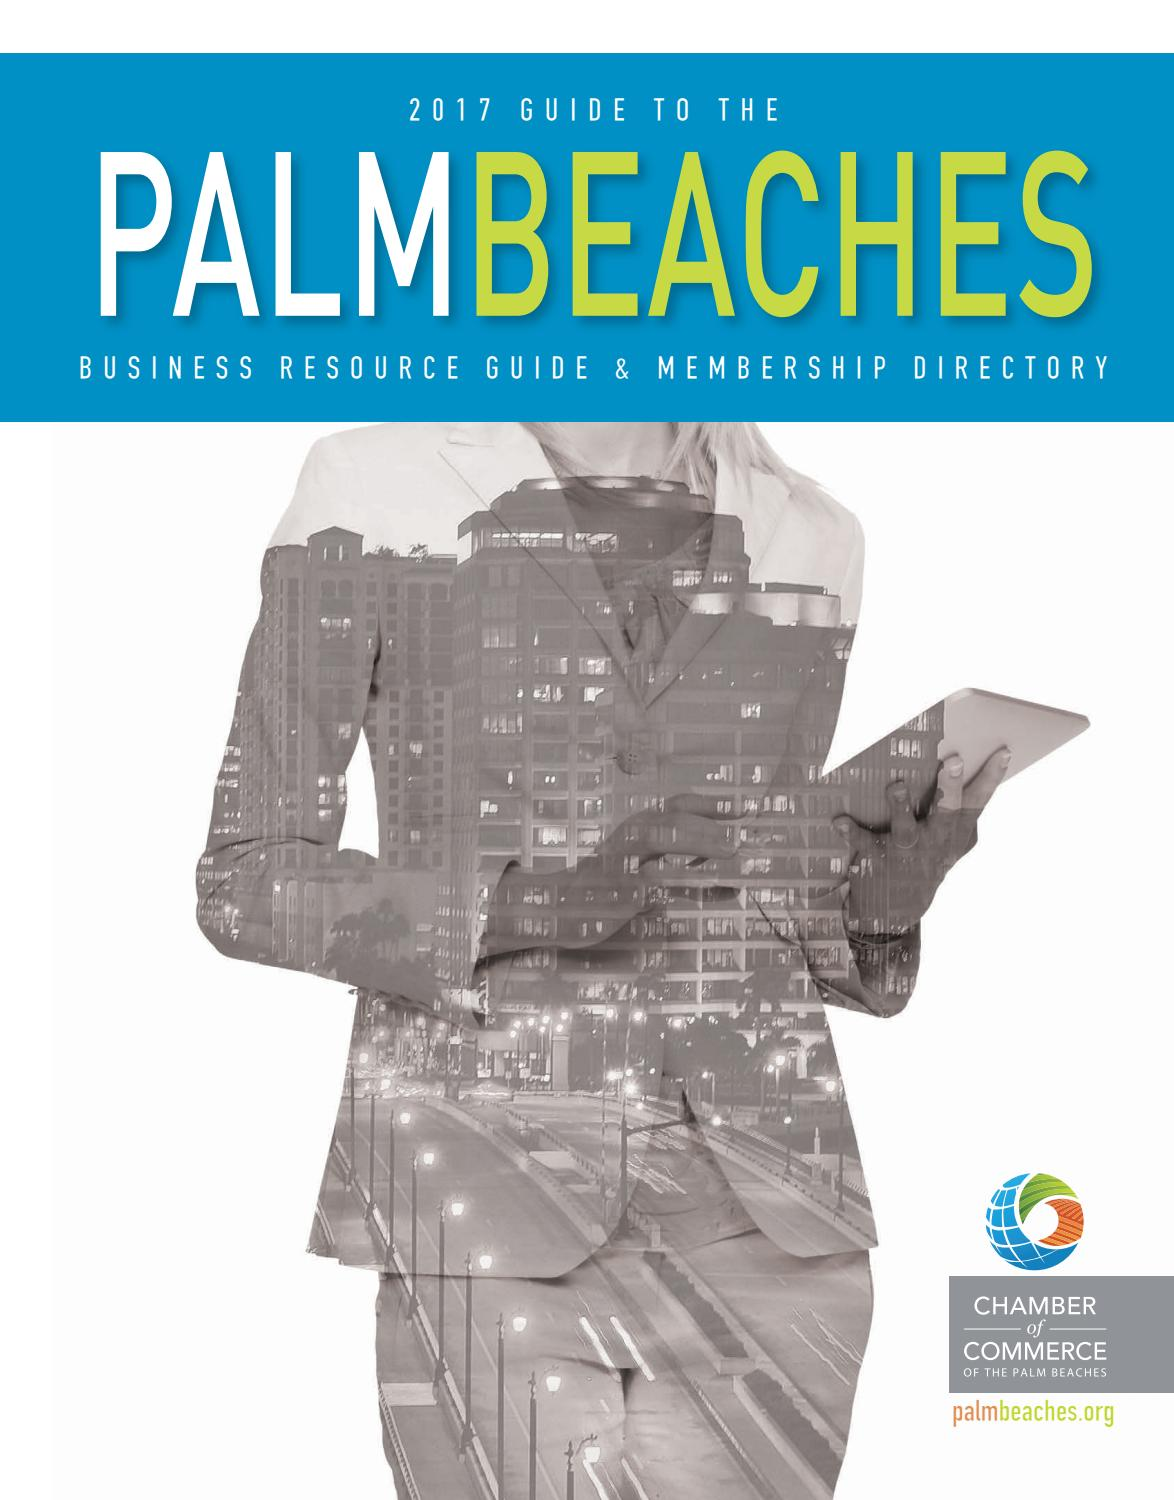 662e016b72e 2017 Guide to the Palm Beaches by Chamber of Commerce of the Palm Beaches -  issuu